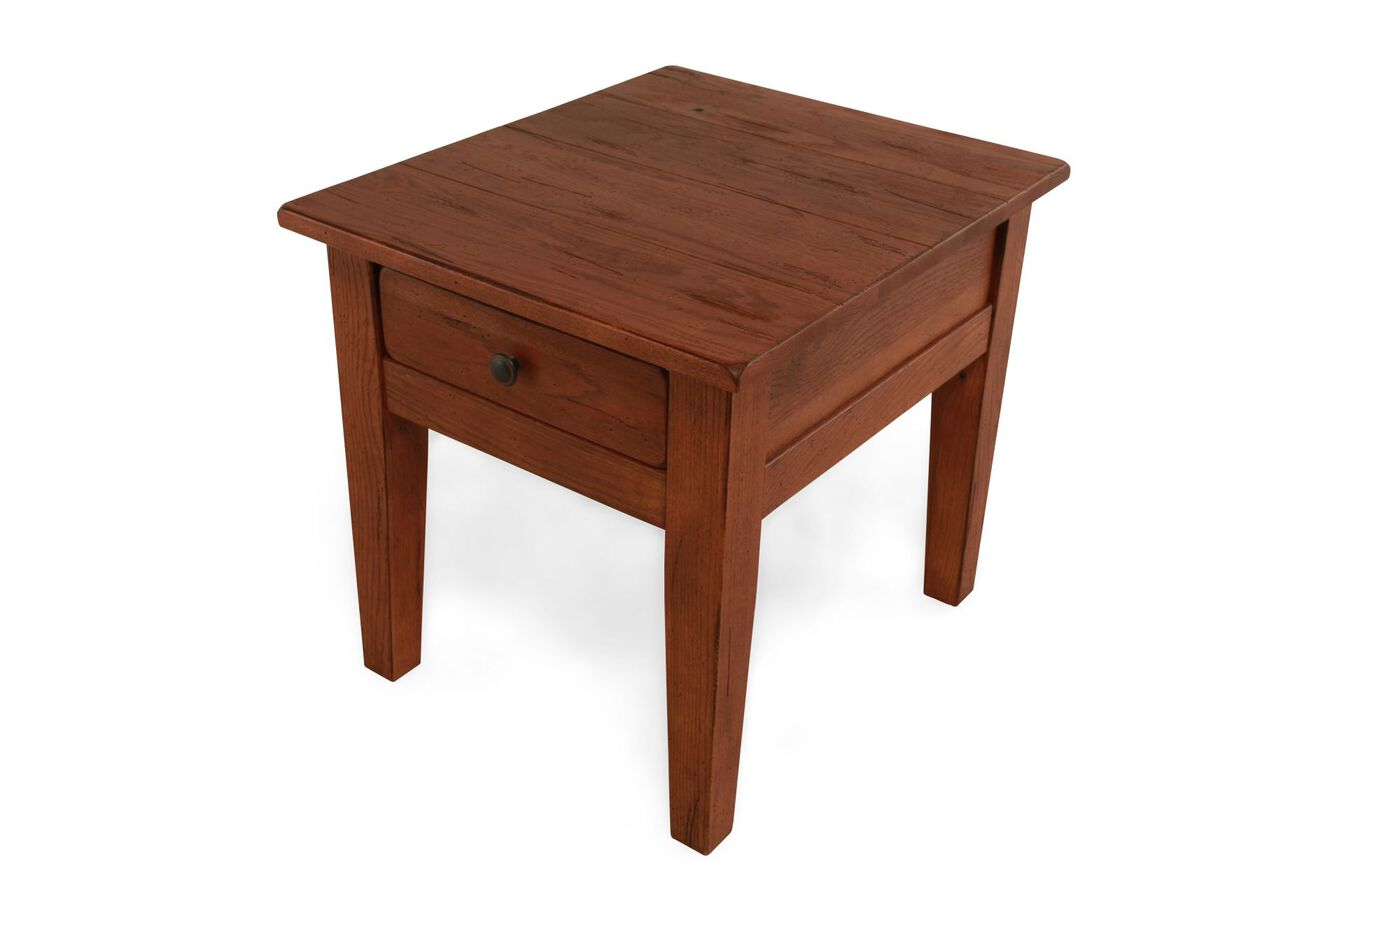 square one drawer country end table in light oak mathis brothers furniture. Black Bedroom Furniture Sets. Home Design Ideas